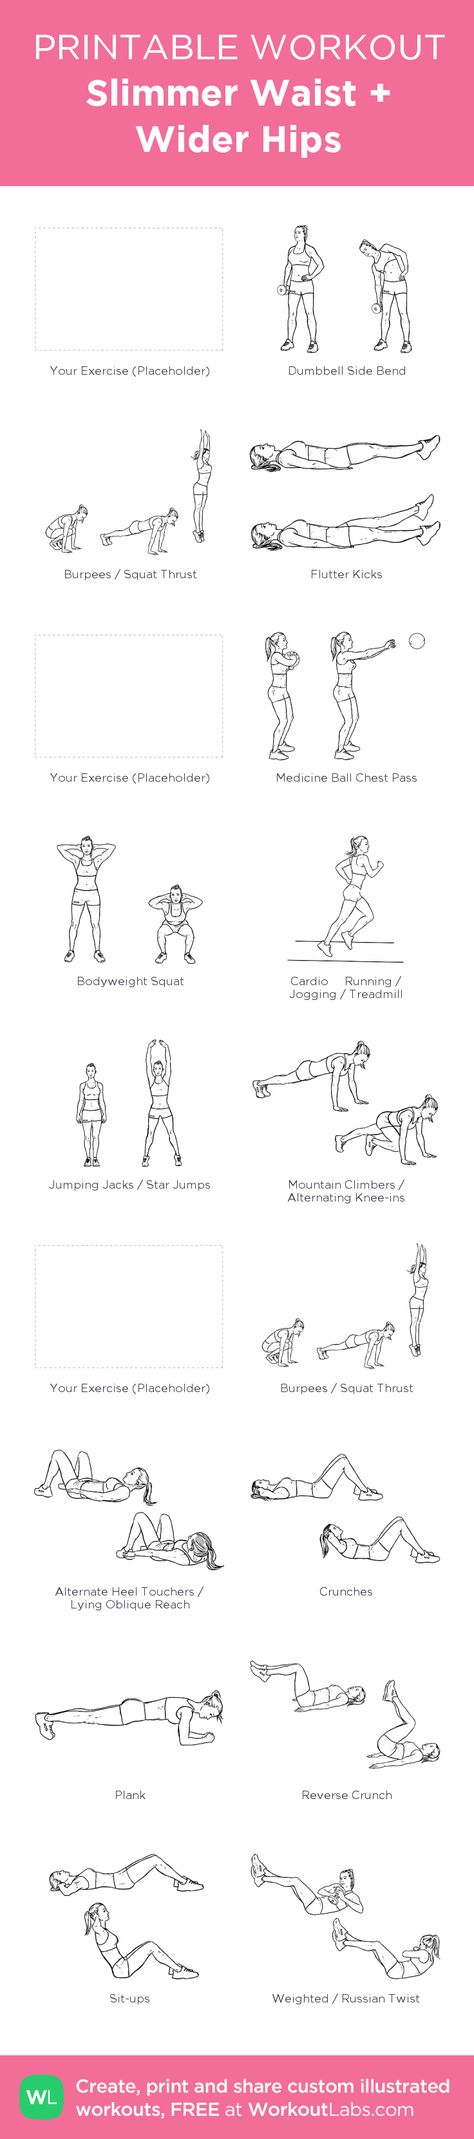 Slimmer Waist + Wider Hips:my visual workout created at WorkoutLabs.com • Click through to customize and download as a FREE PDF! #customworkout